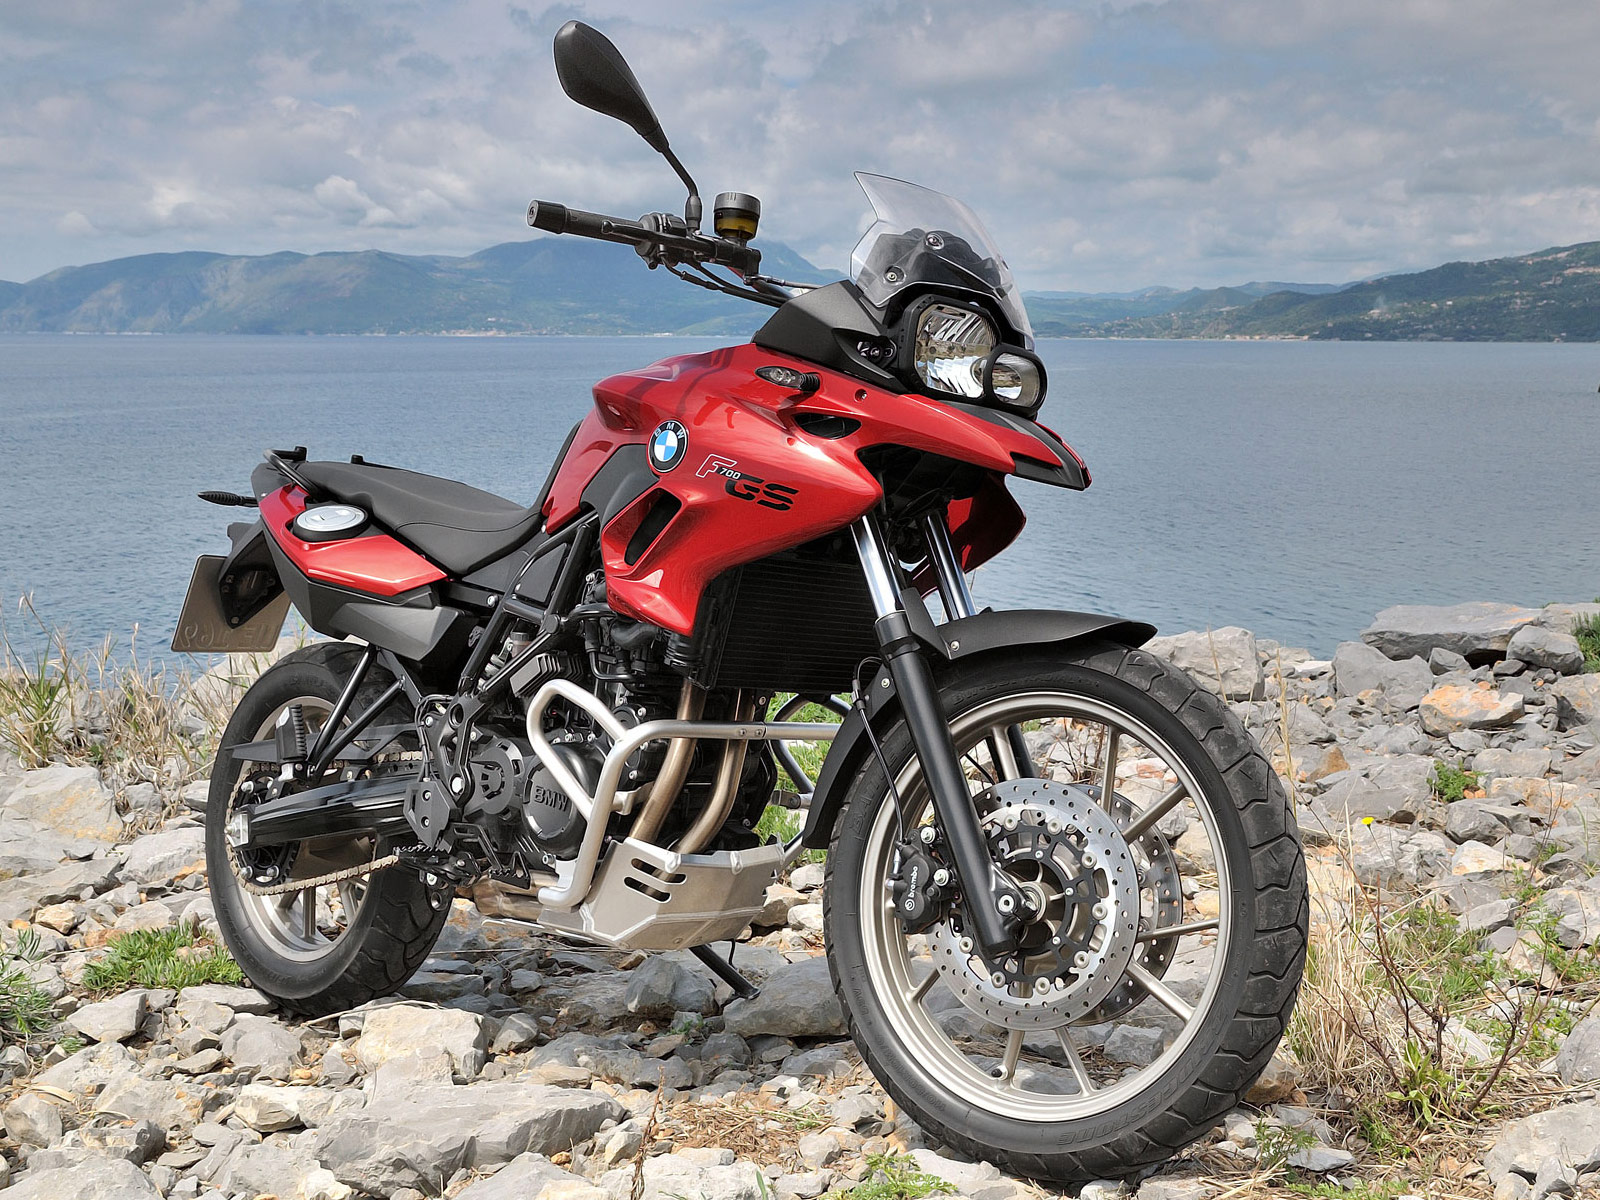 Unik Aneh Lucu Langka ON THE SPOT TRANS7 2013 BMW F700GS Gambar